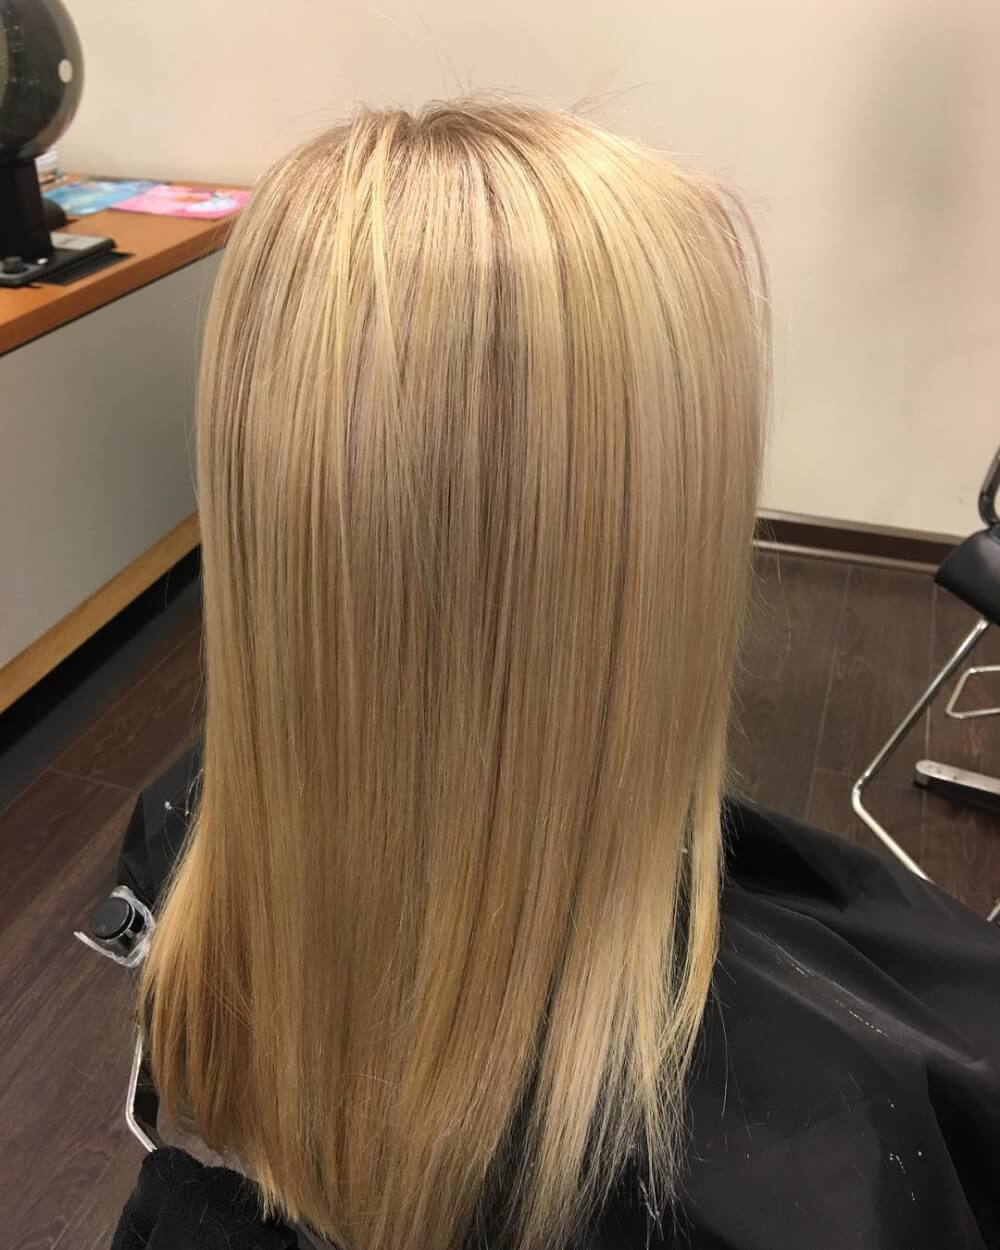 Haircut Styles For Long Thin Hair: 23 Perfect Hairstyles For Fine Hair In 2018